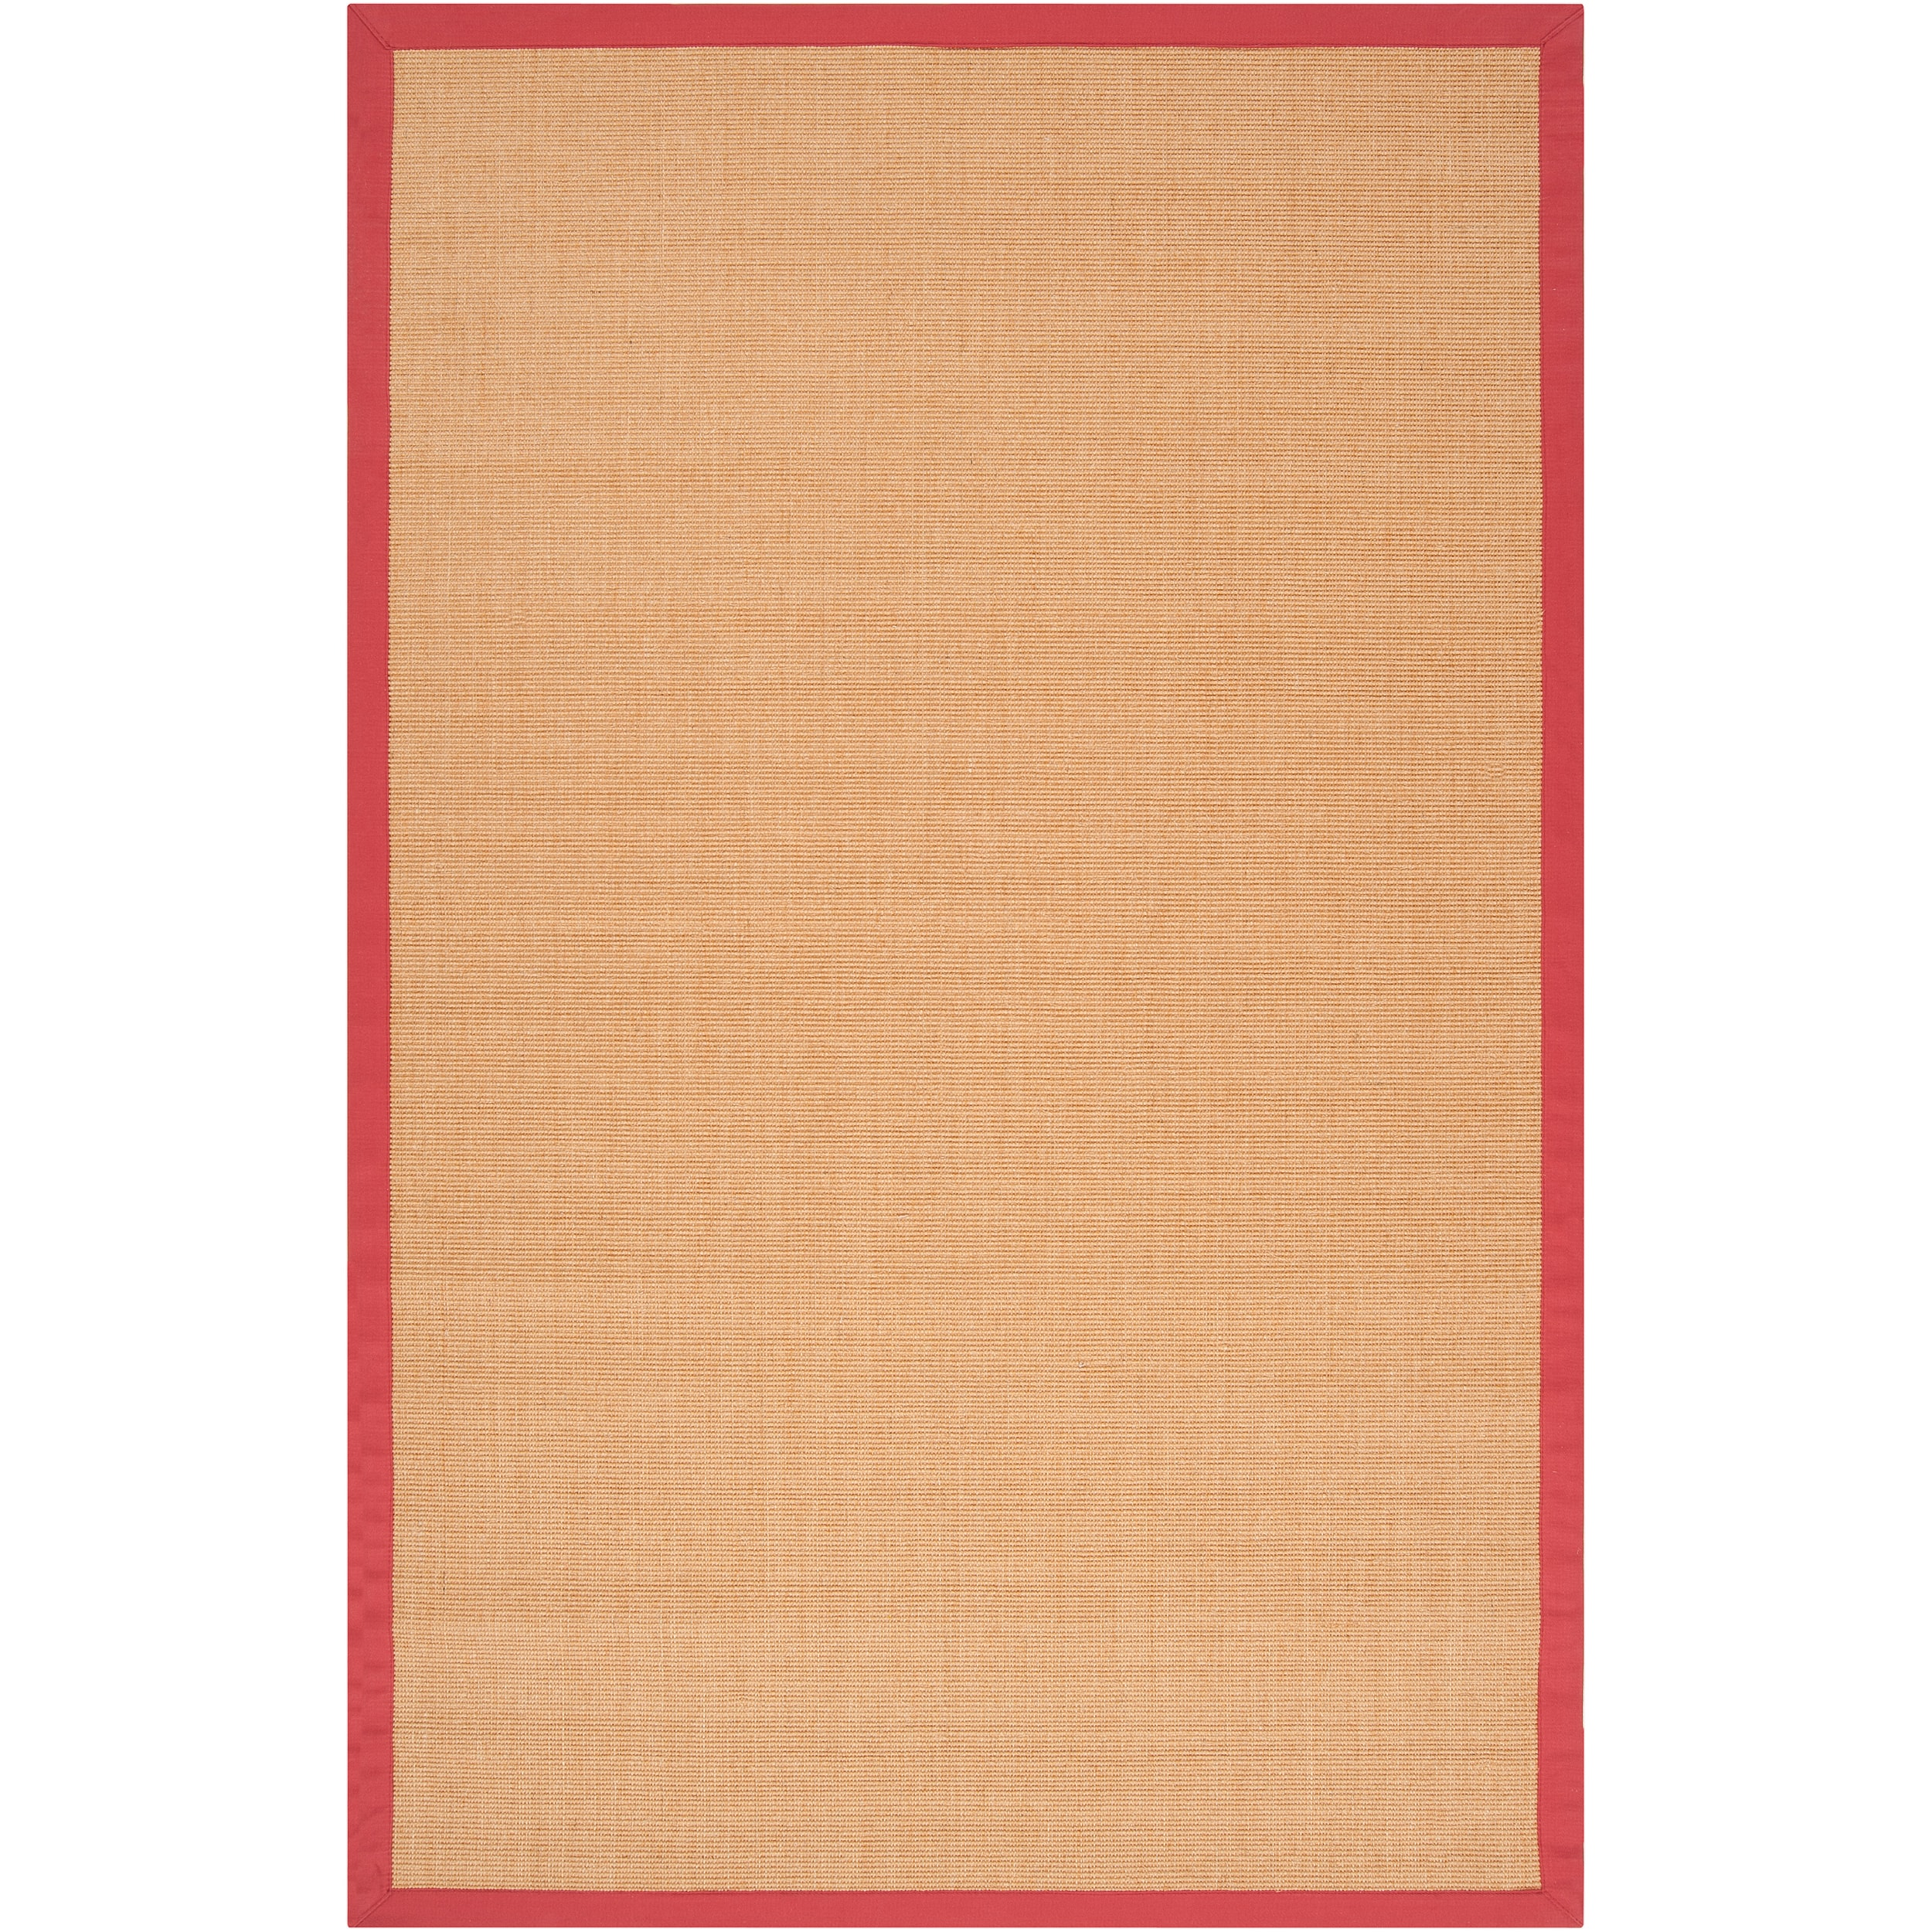 Traditional Woven Red Hillsborough West Natural Fiber Sisal Rug (8' x 10')